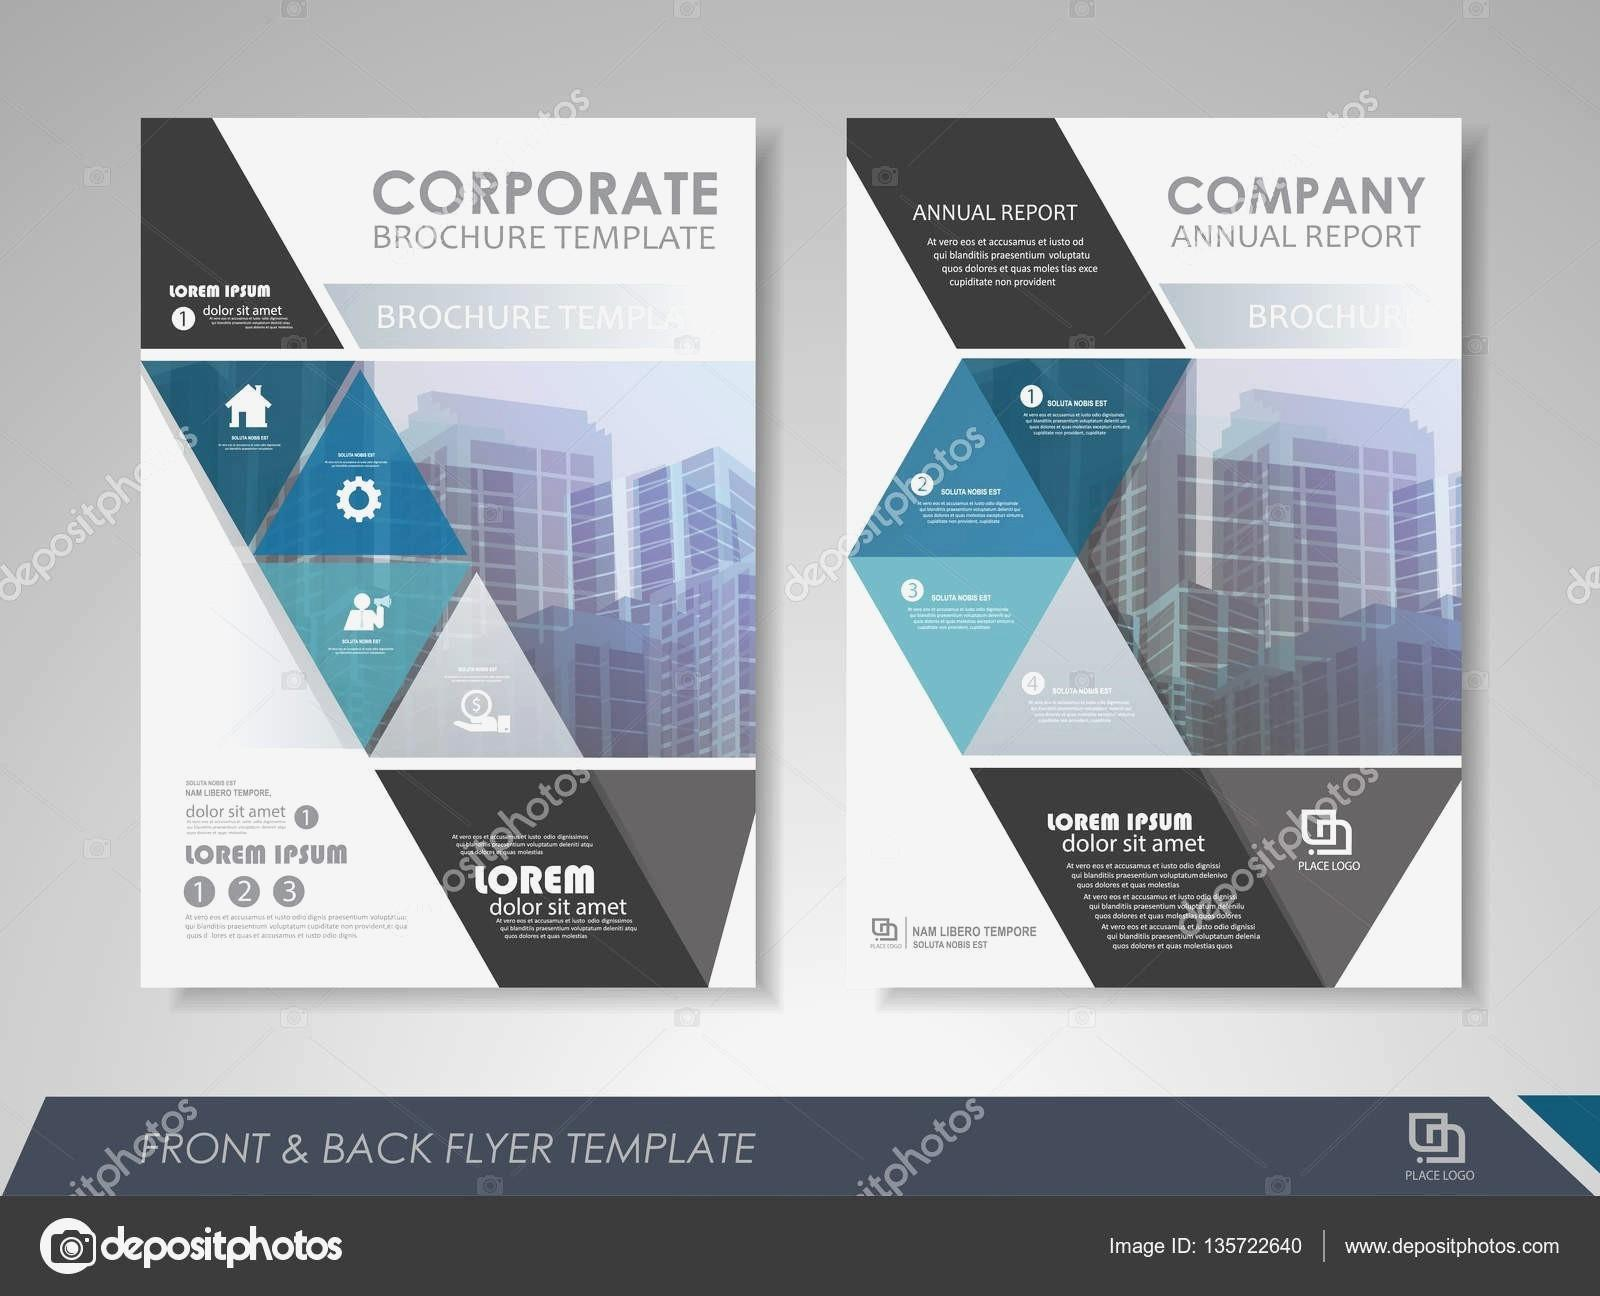 Free Brochure Templates Photoshop